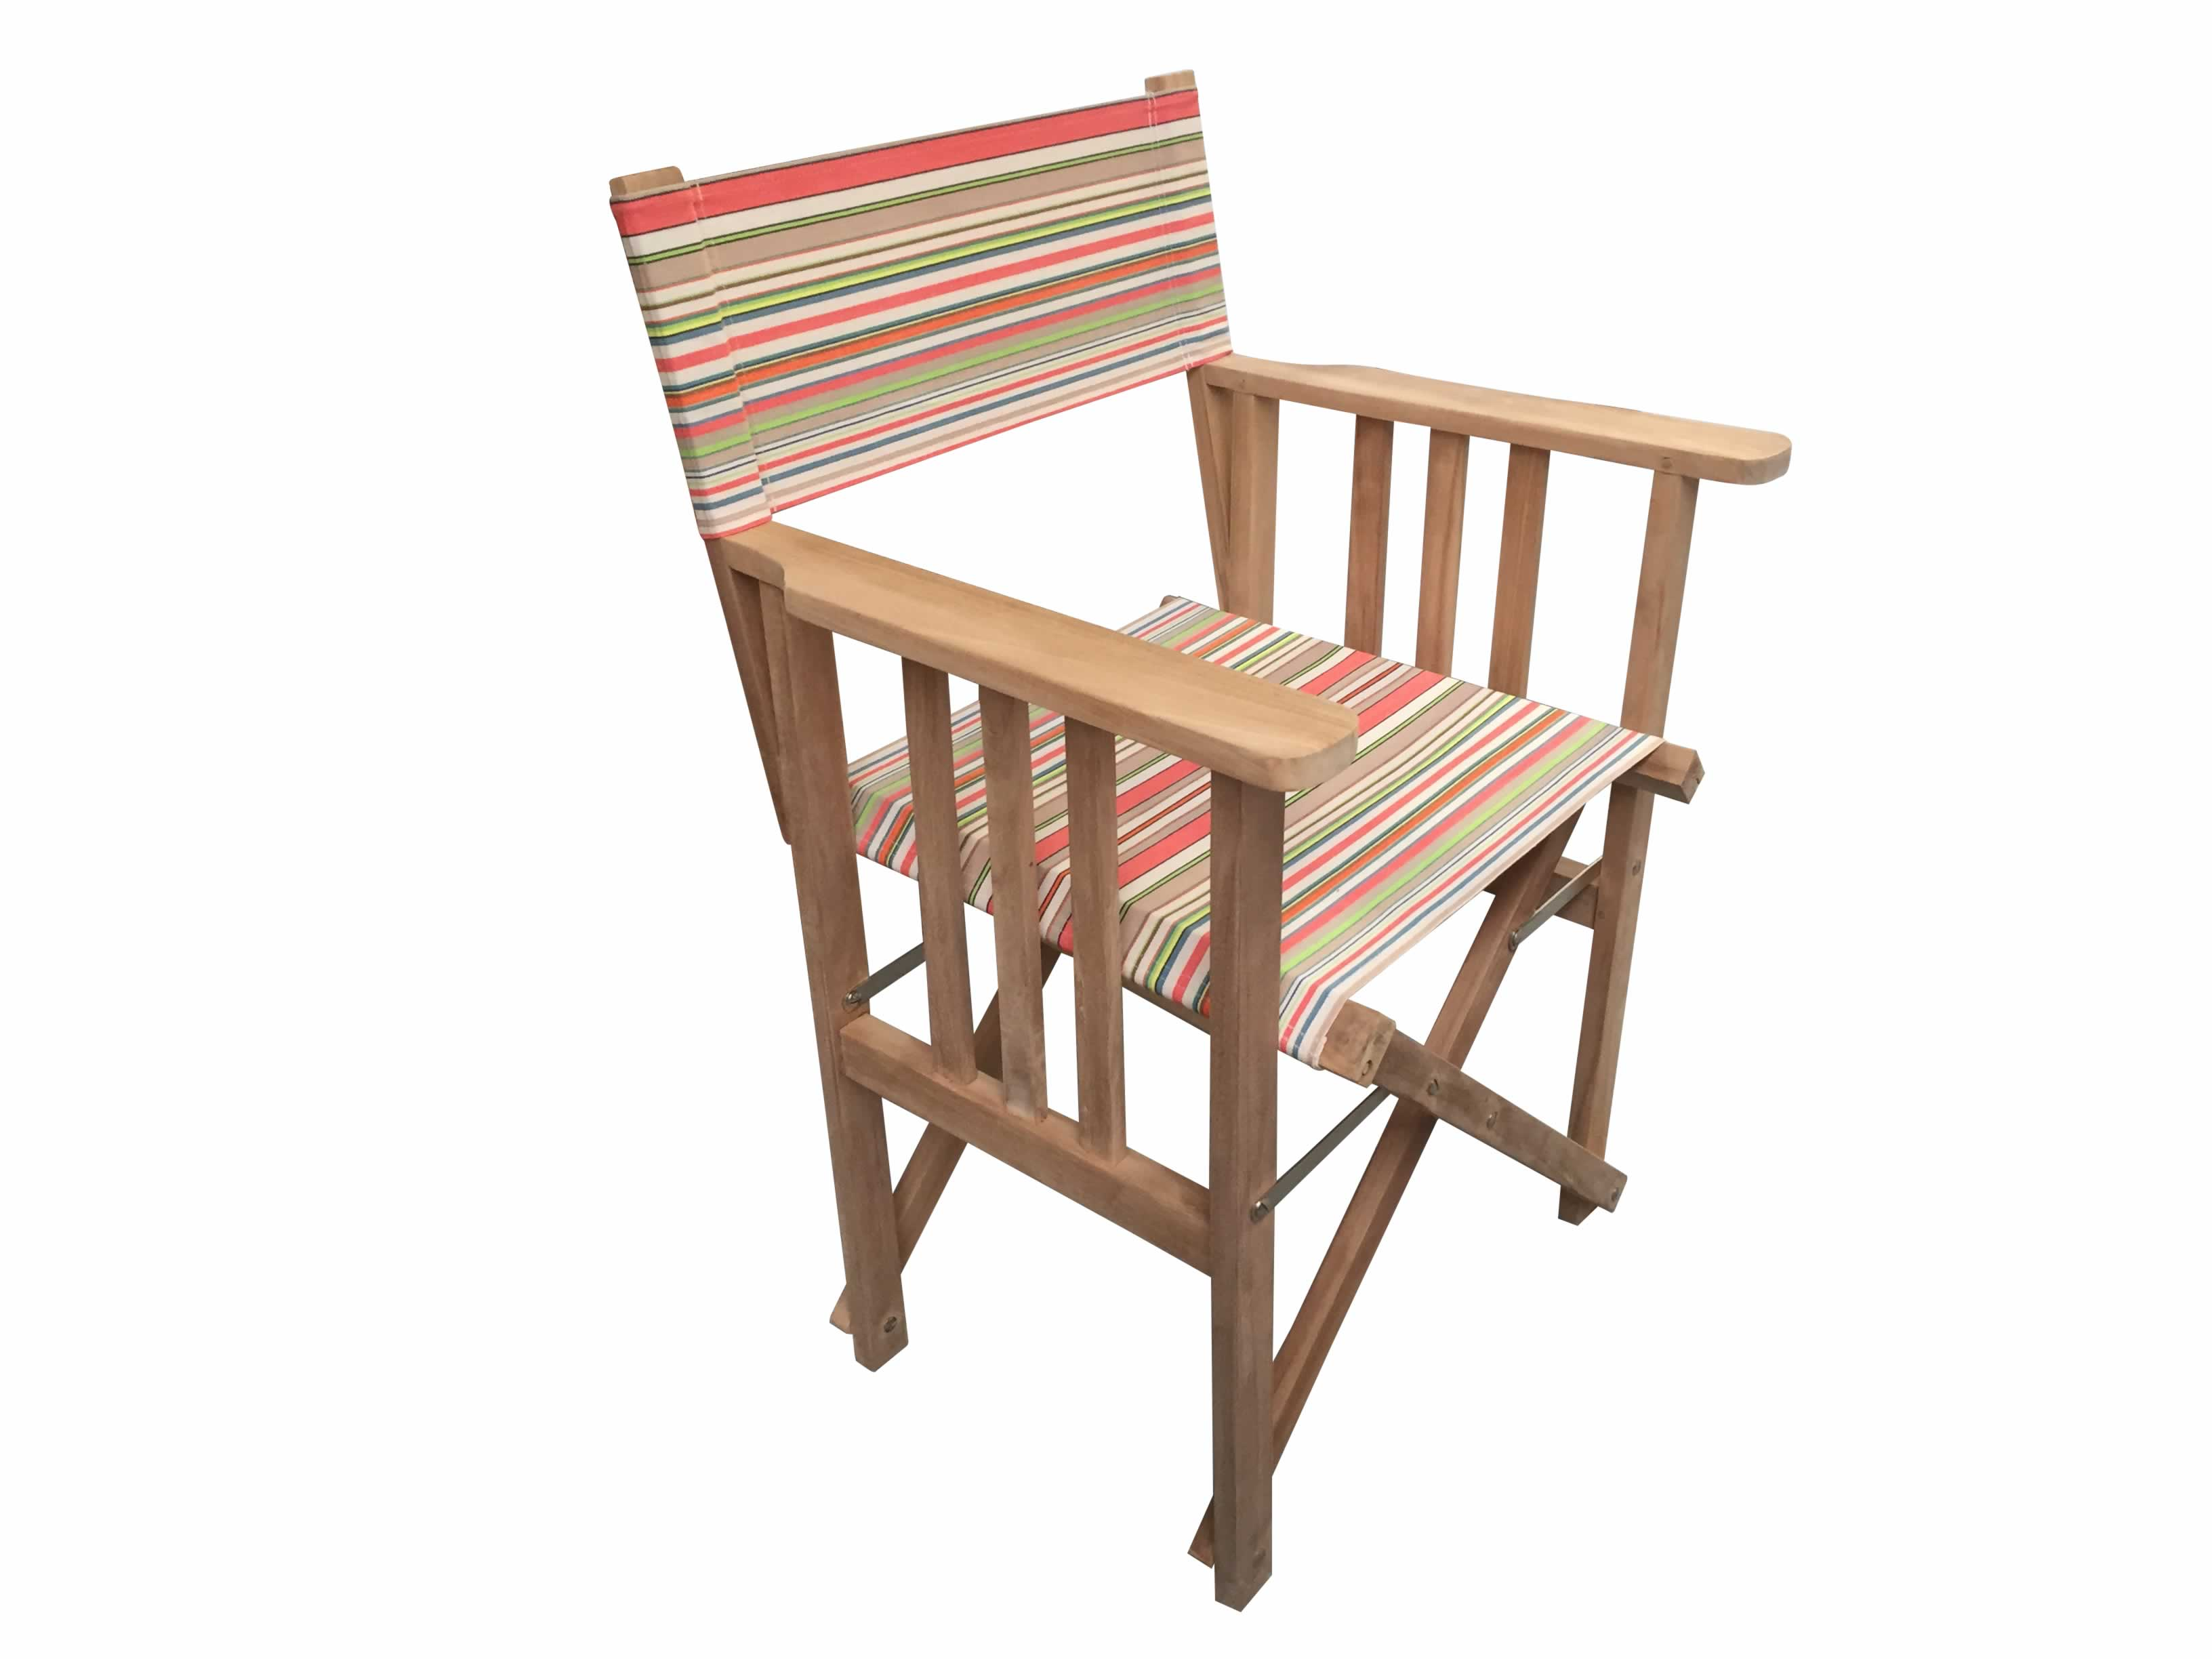 Groovy Vintage Look Directors Chair Slamball Stripe Home Interior And Landscaping Dextoversignezvosmurscom